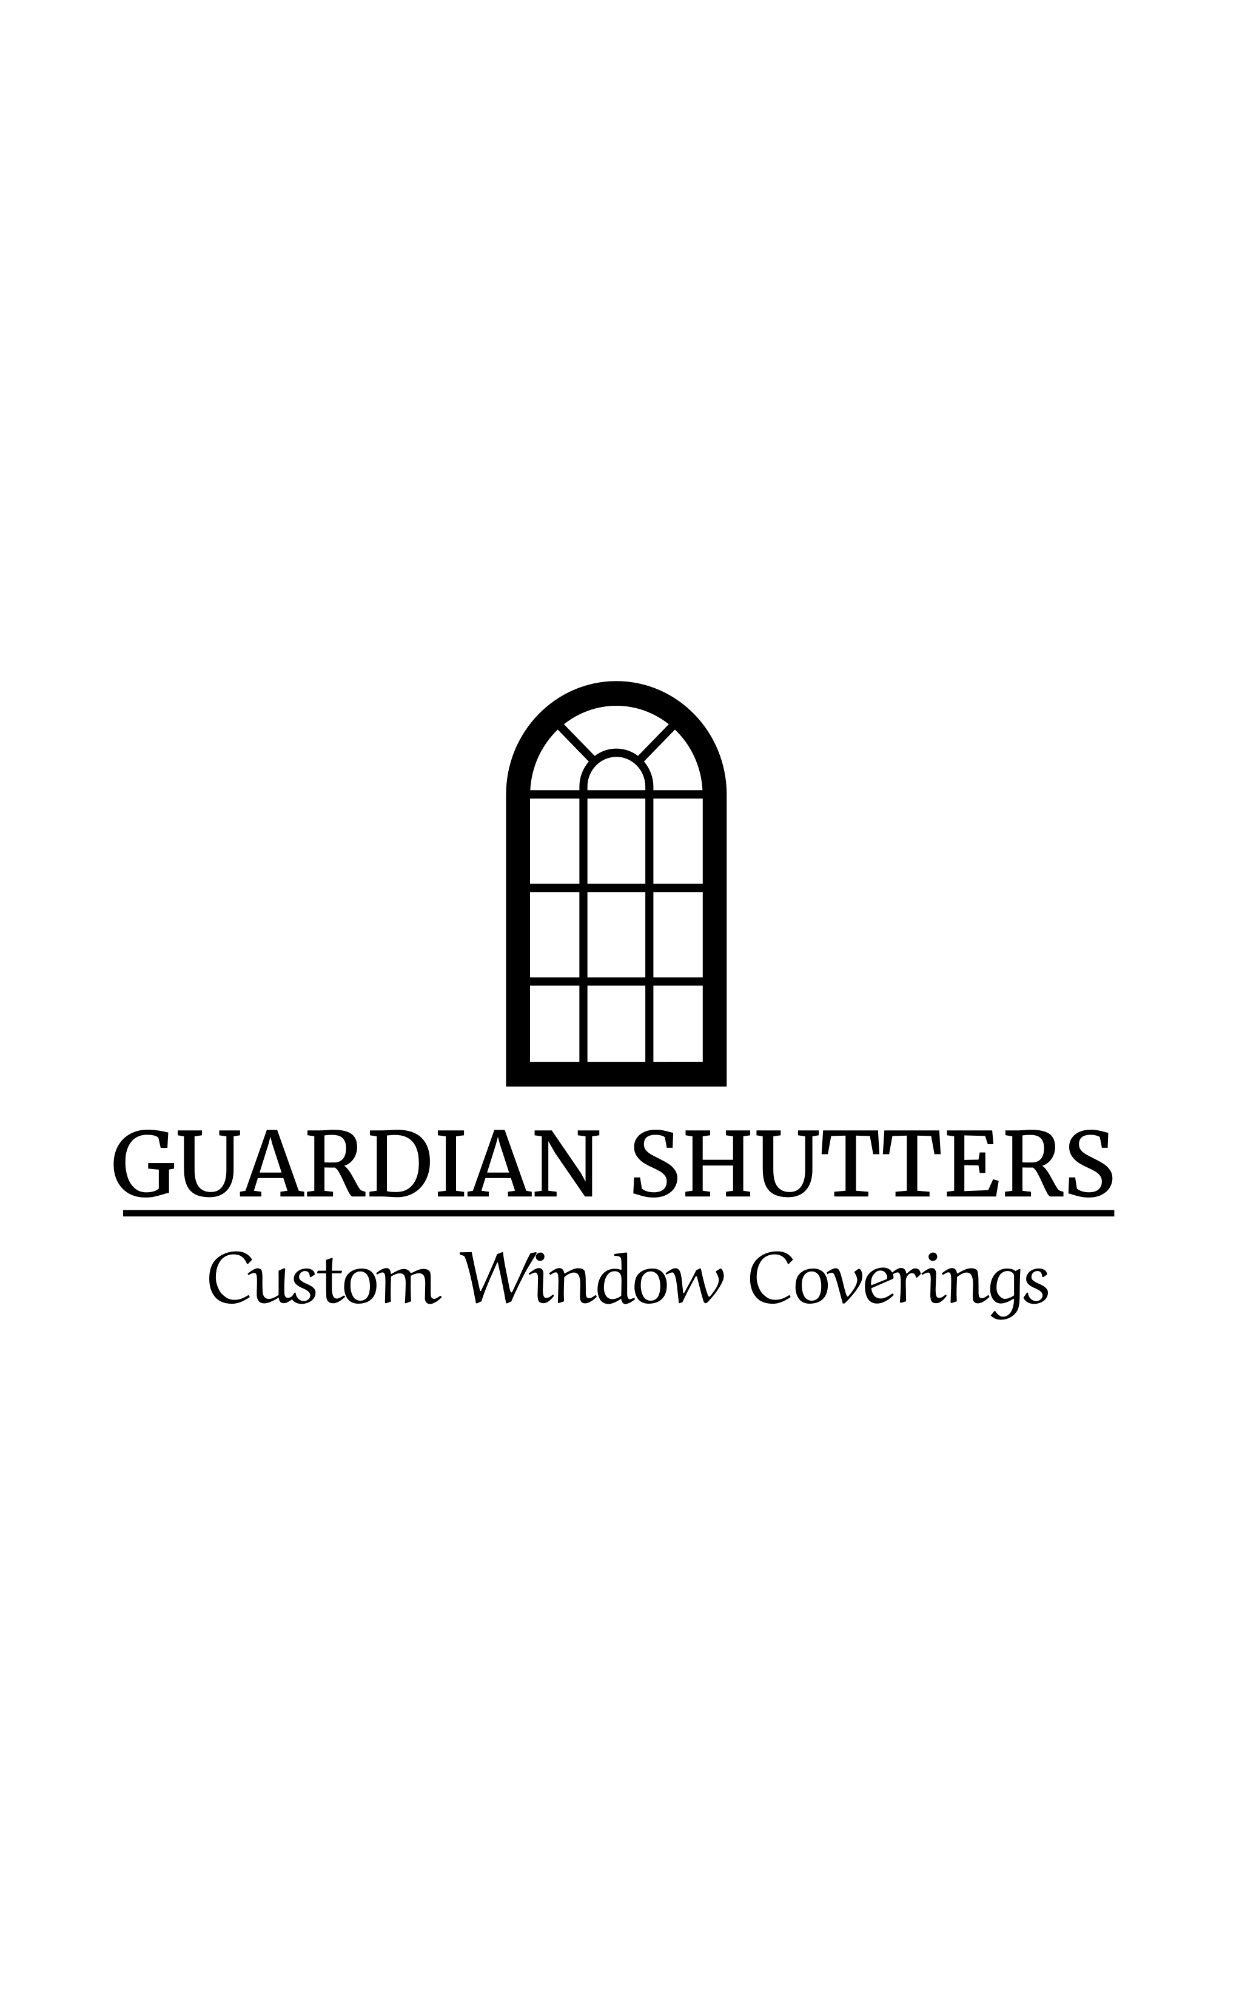 Guardian Shutters and Home Improvements